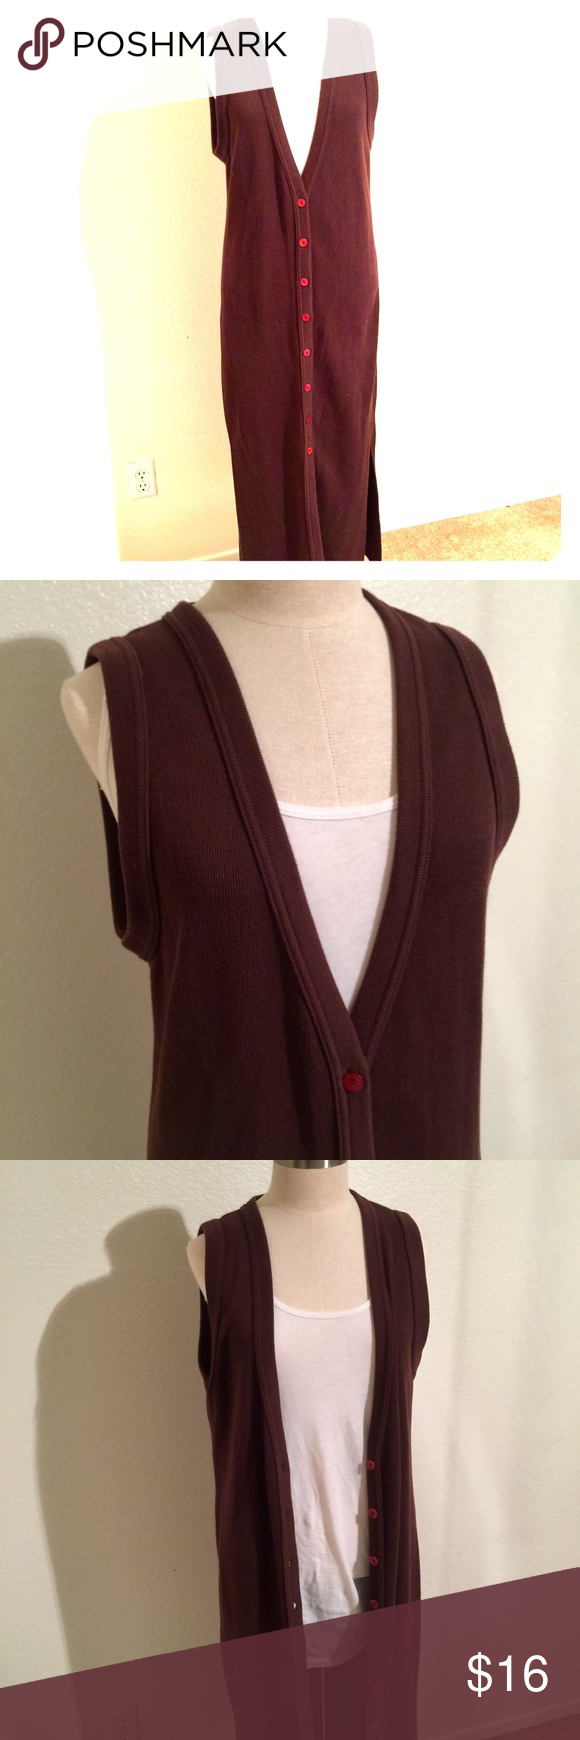 Express Long Cardigan Vest Size Small This chocolate brown vest ...